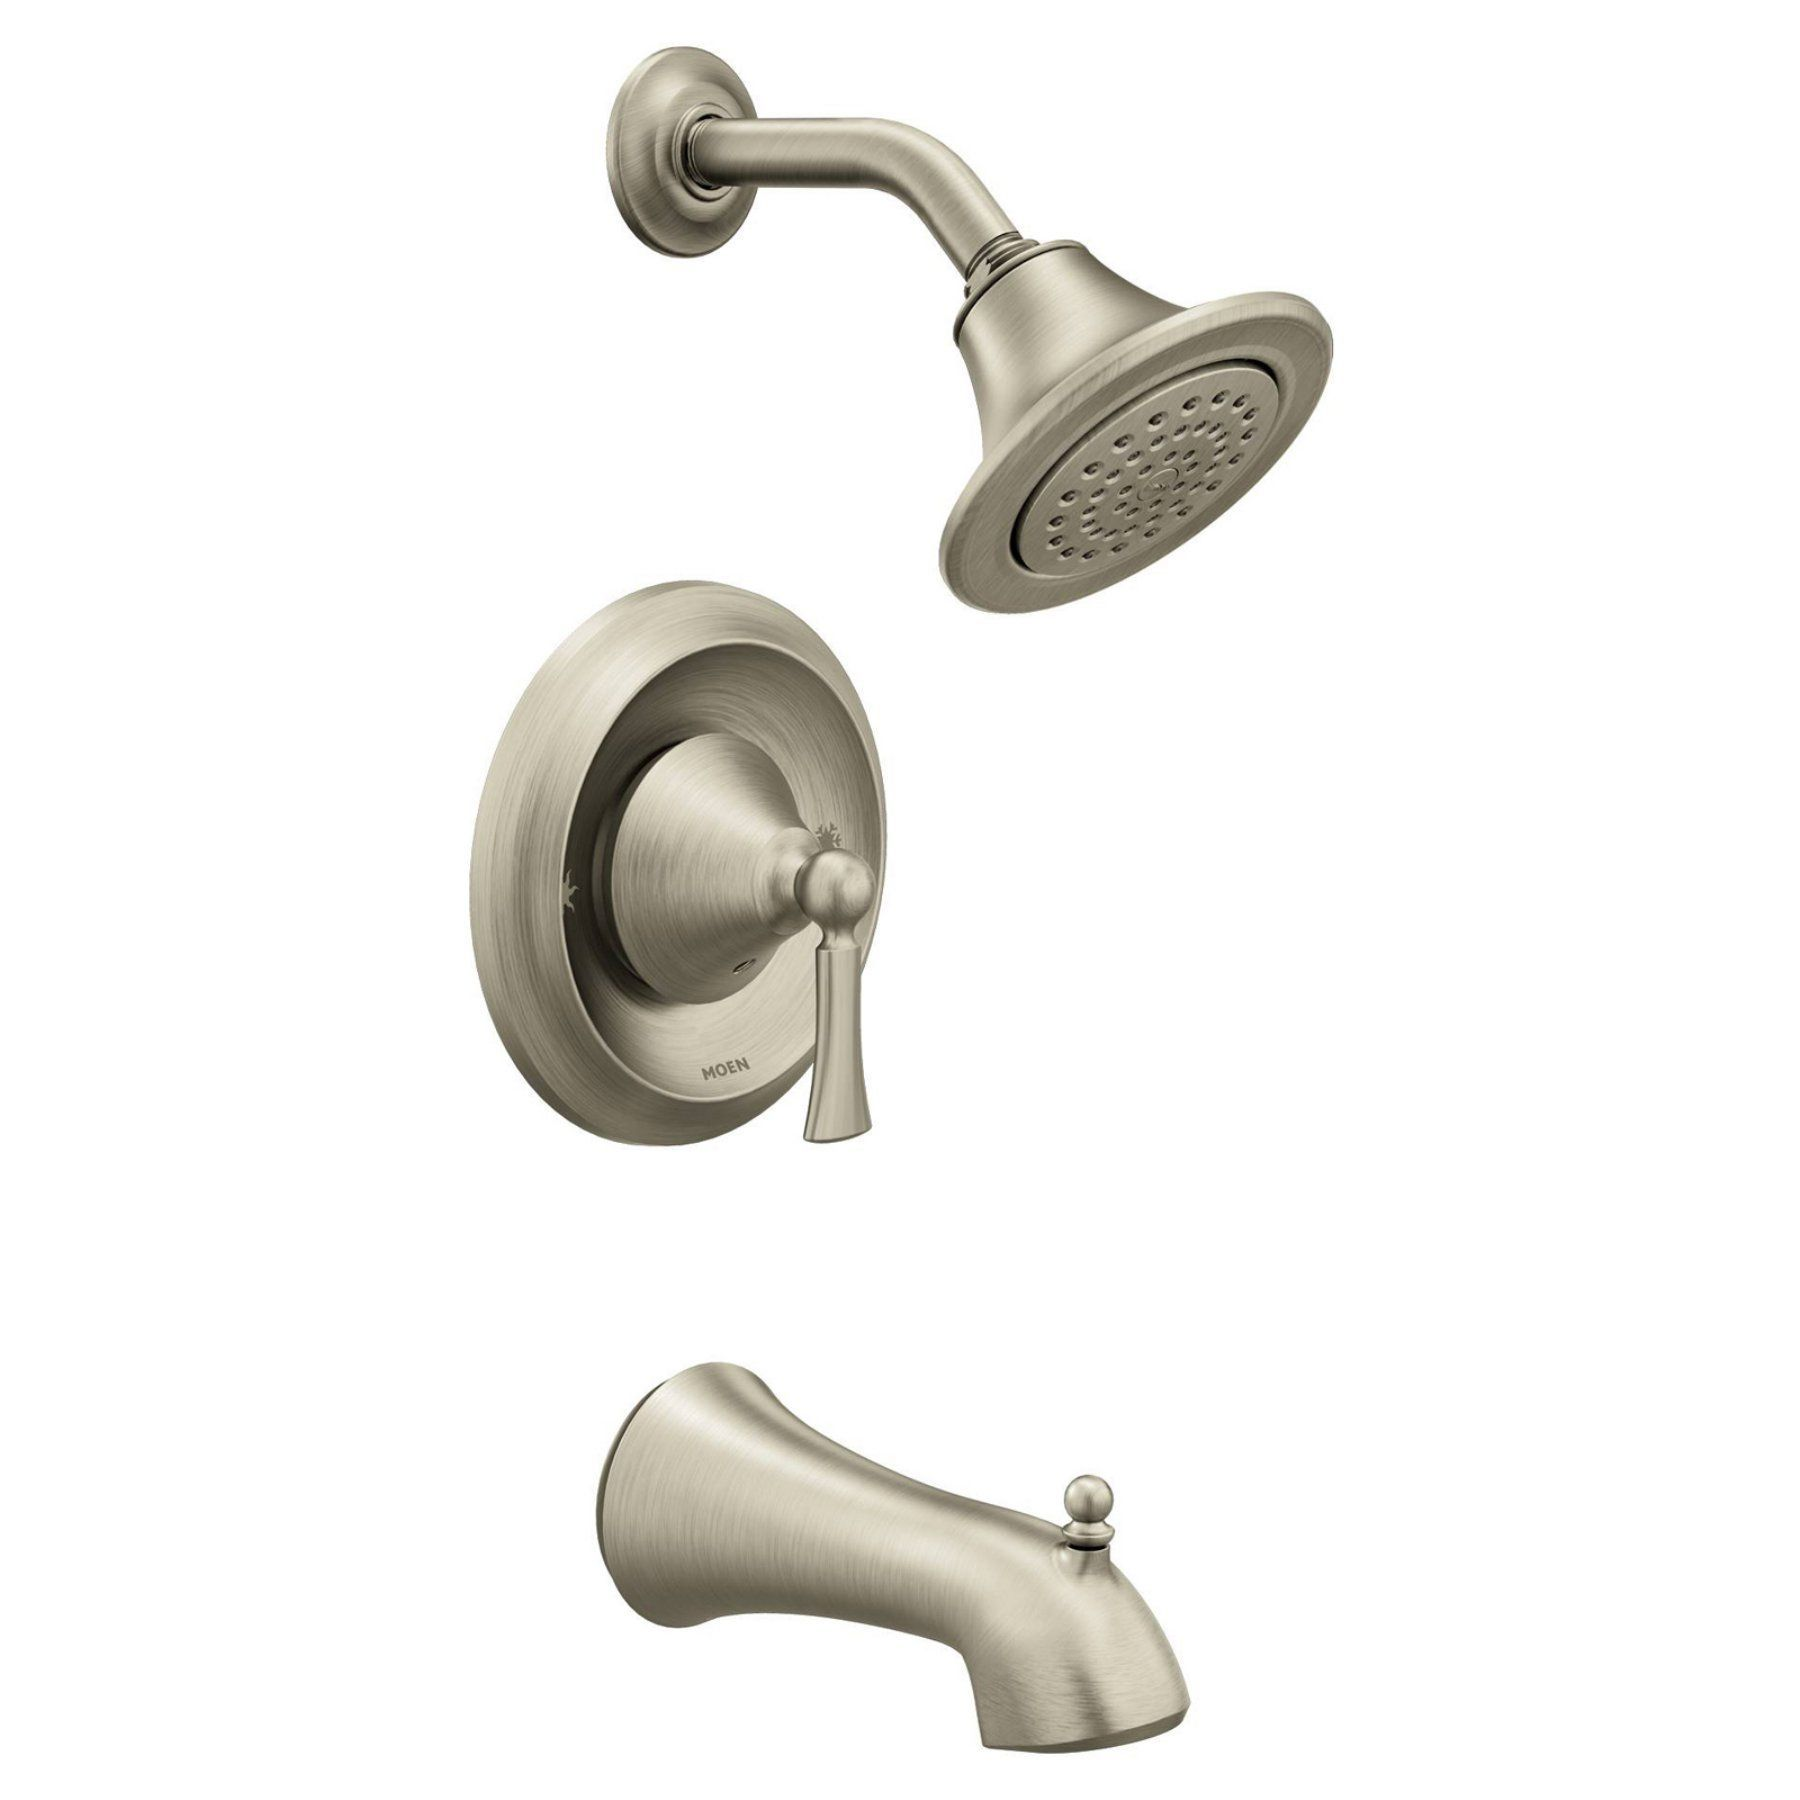 Moen Wynford Brushed Nickel Posi Temp Tub Shower Mt4503bn Products Shower Faucet Shower Tub Tub Shower Faucets